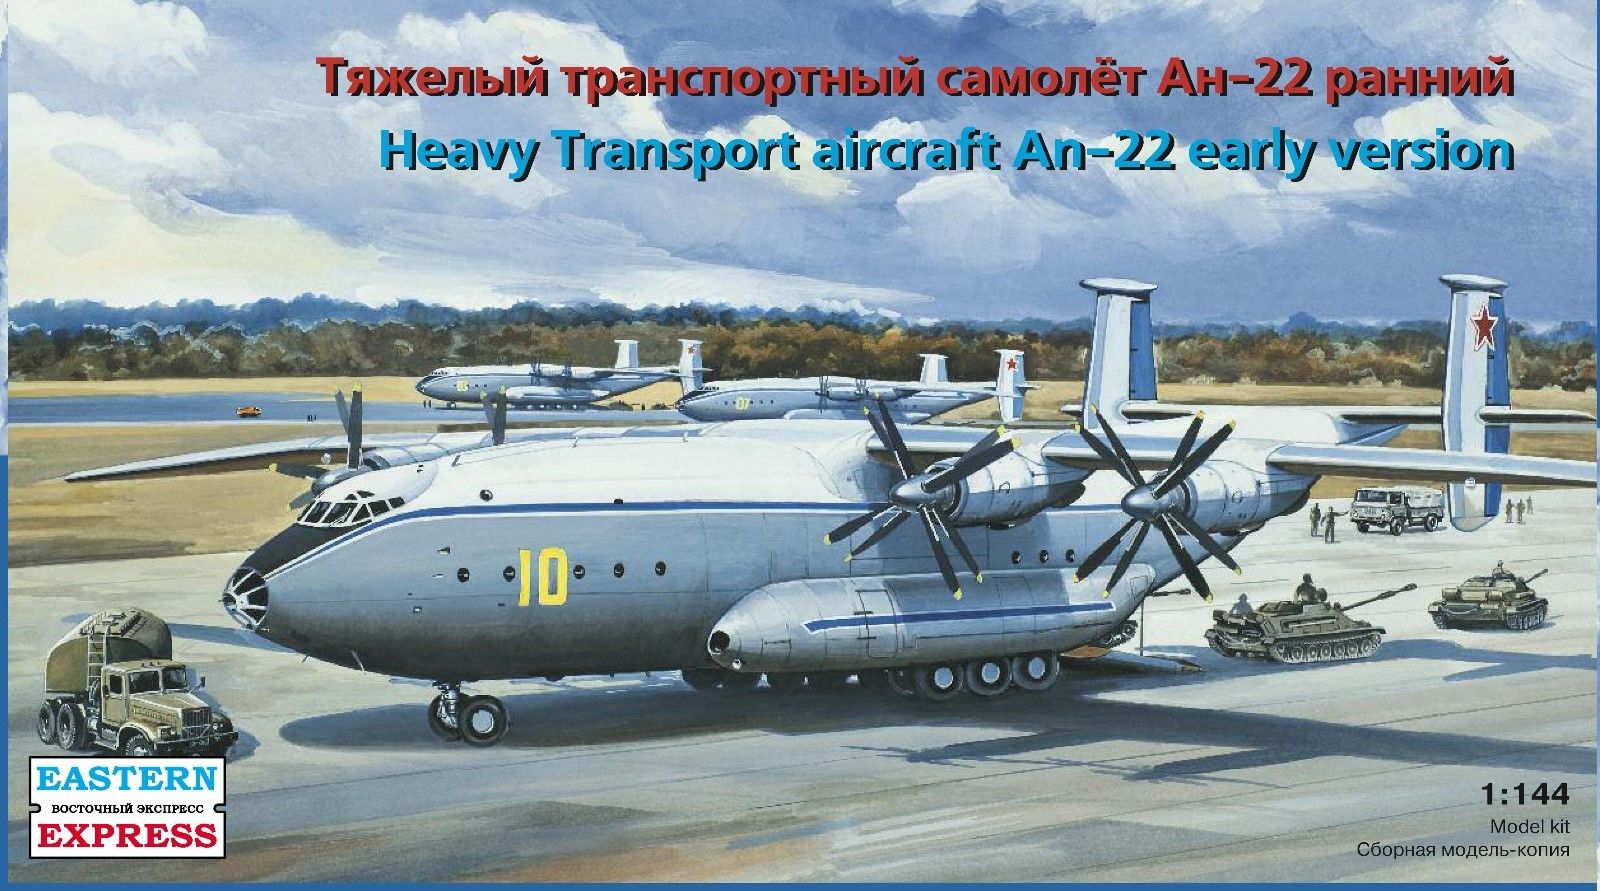 Heavy Transport aircraft An-22 Early version